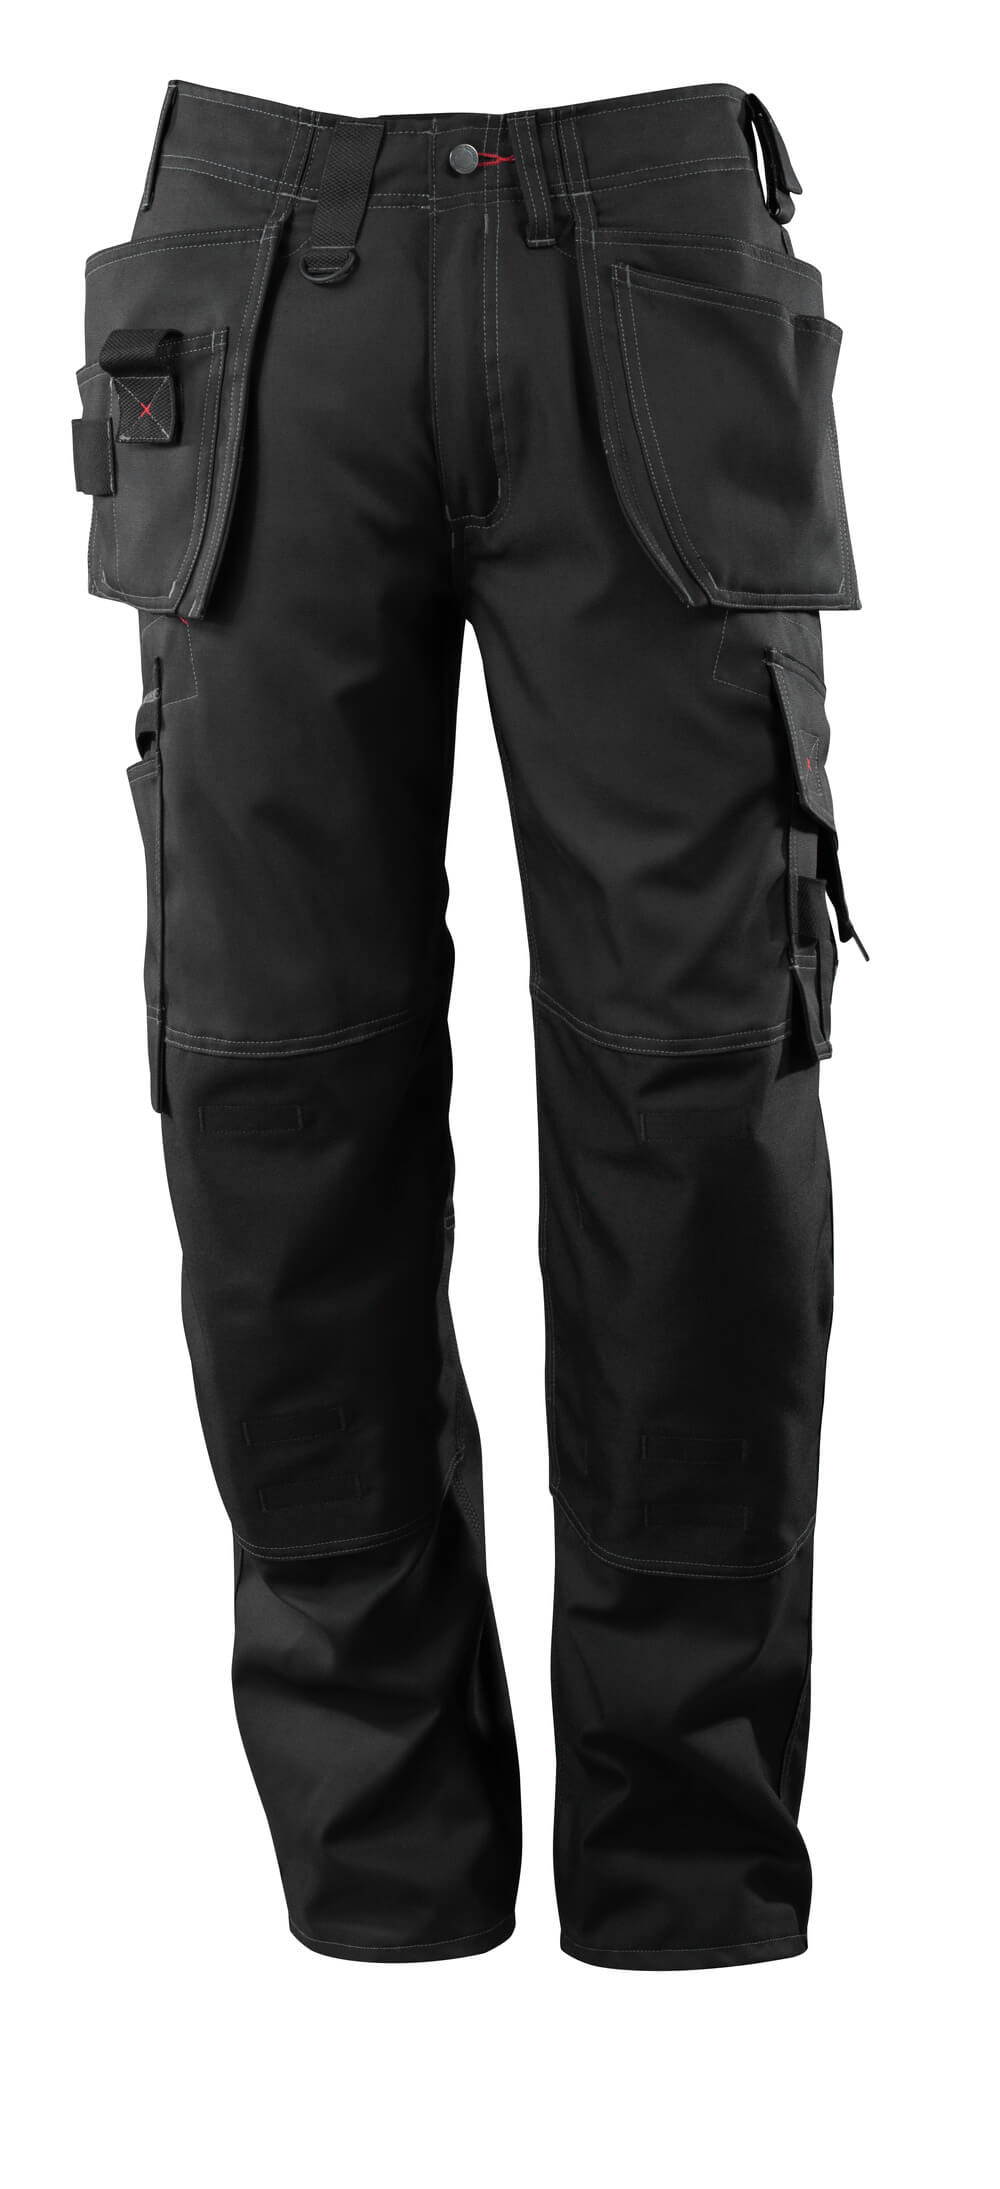 07379-154-09 Pants with kneepad pockets and holster pockets - black